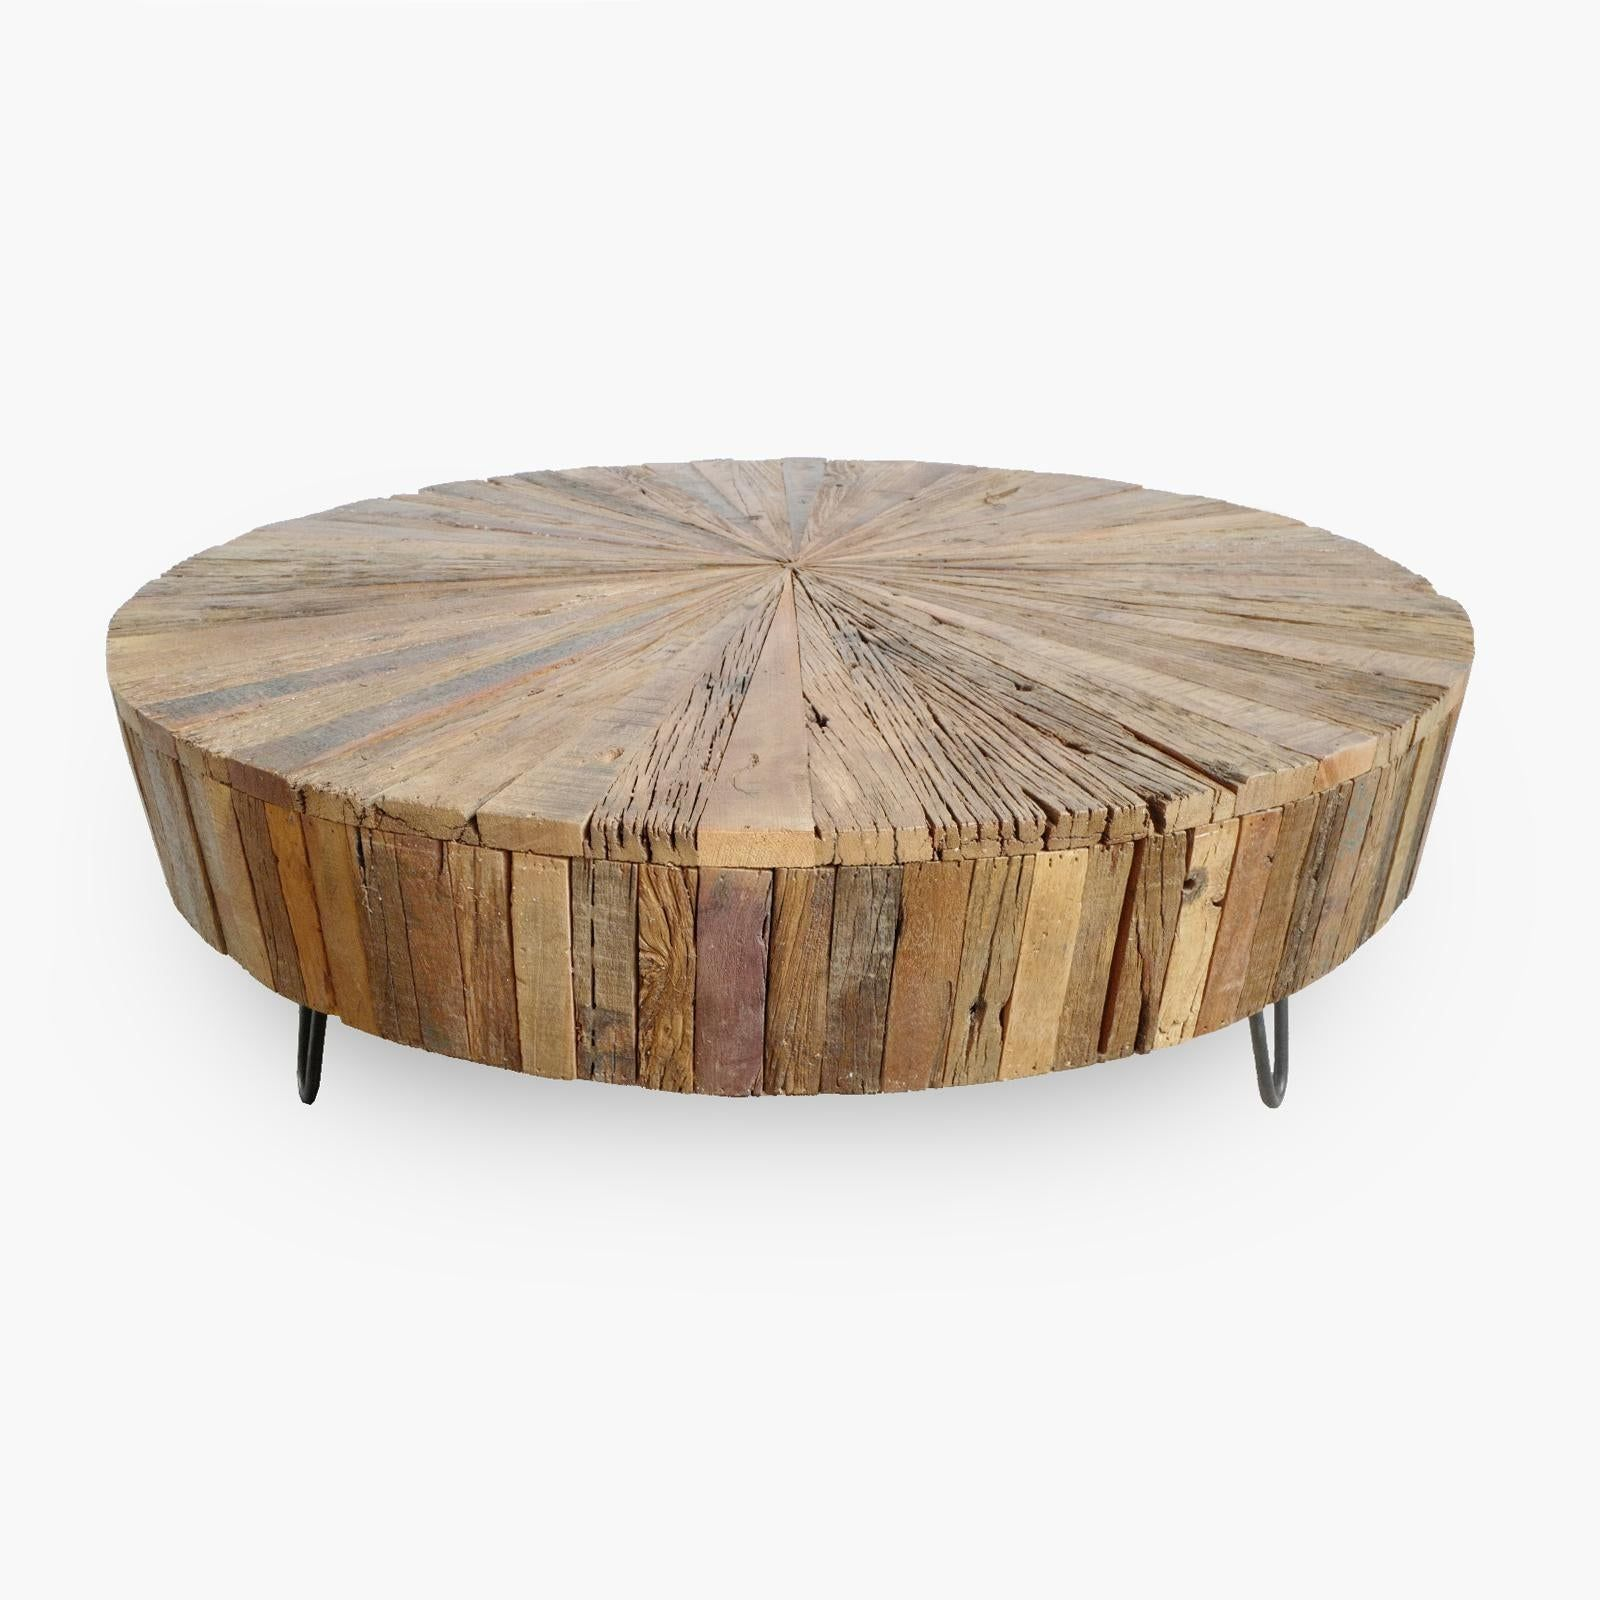 Reclaimed Round Coffee Table Chairish Reclaimed Coffee Table Wood Coffee Table Living Room Coffee Table [ 1600 x 1600 Pixel ]